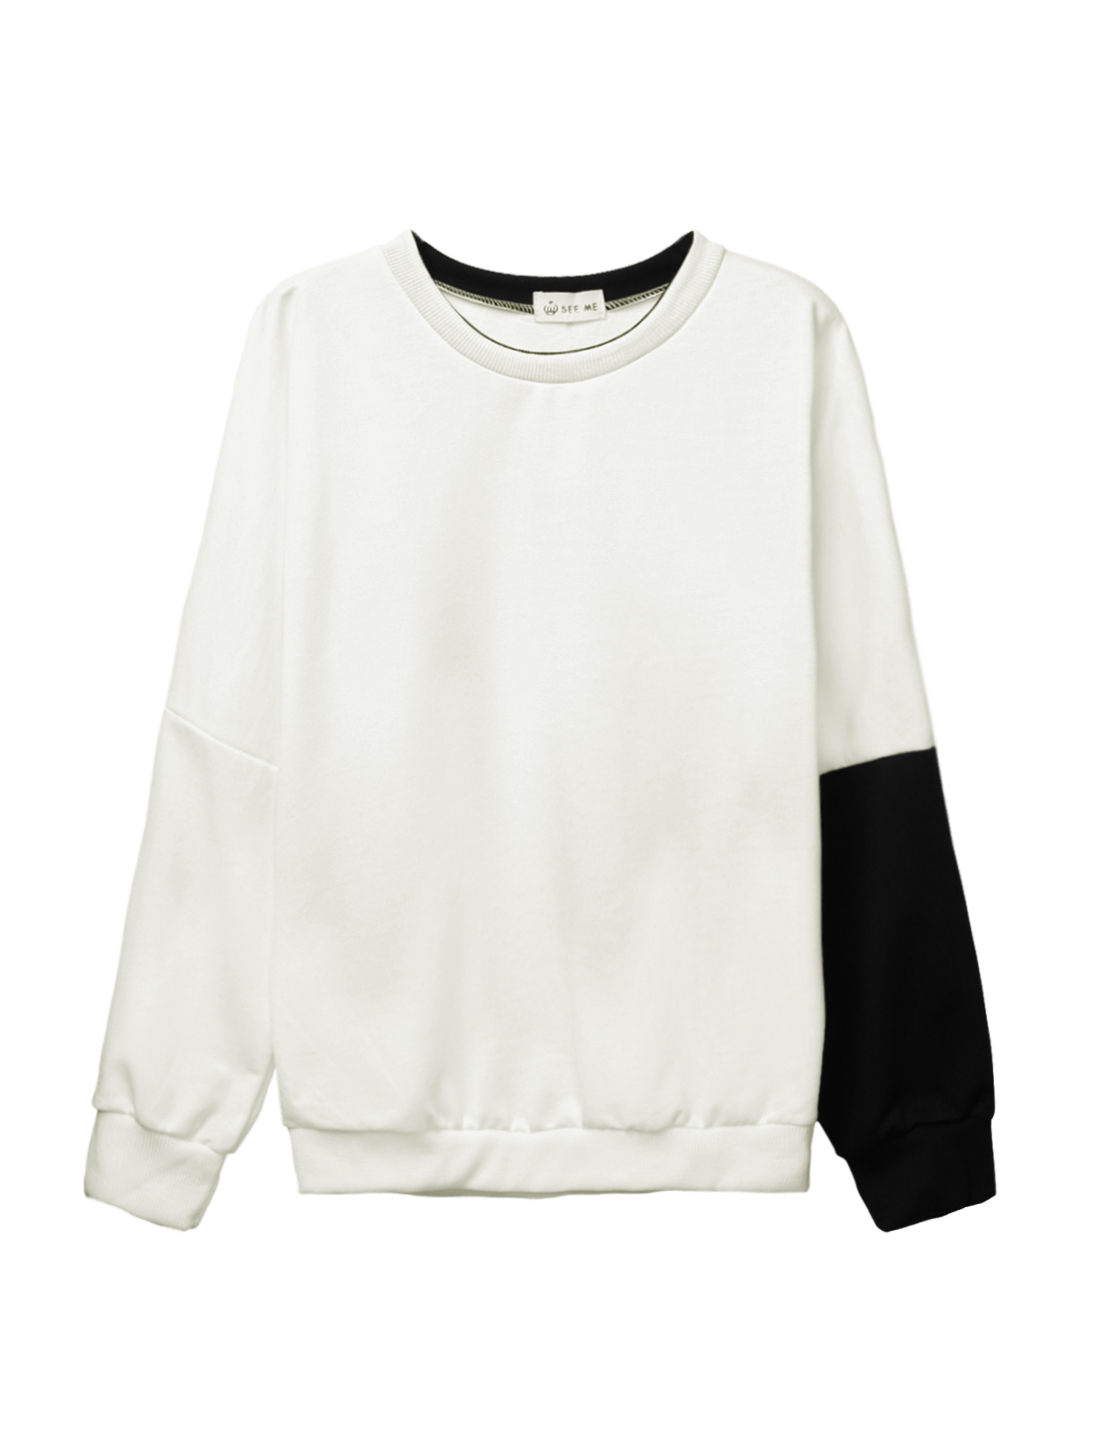 Women Crew Neck Dolman Sleeves Color Block Casual Sweatshirt White XS